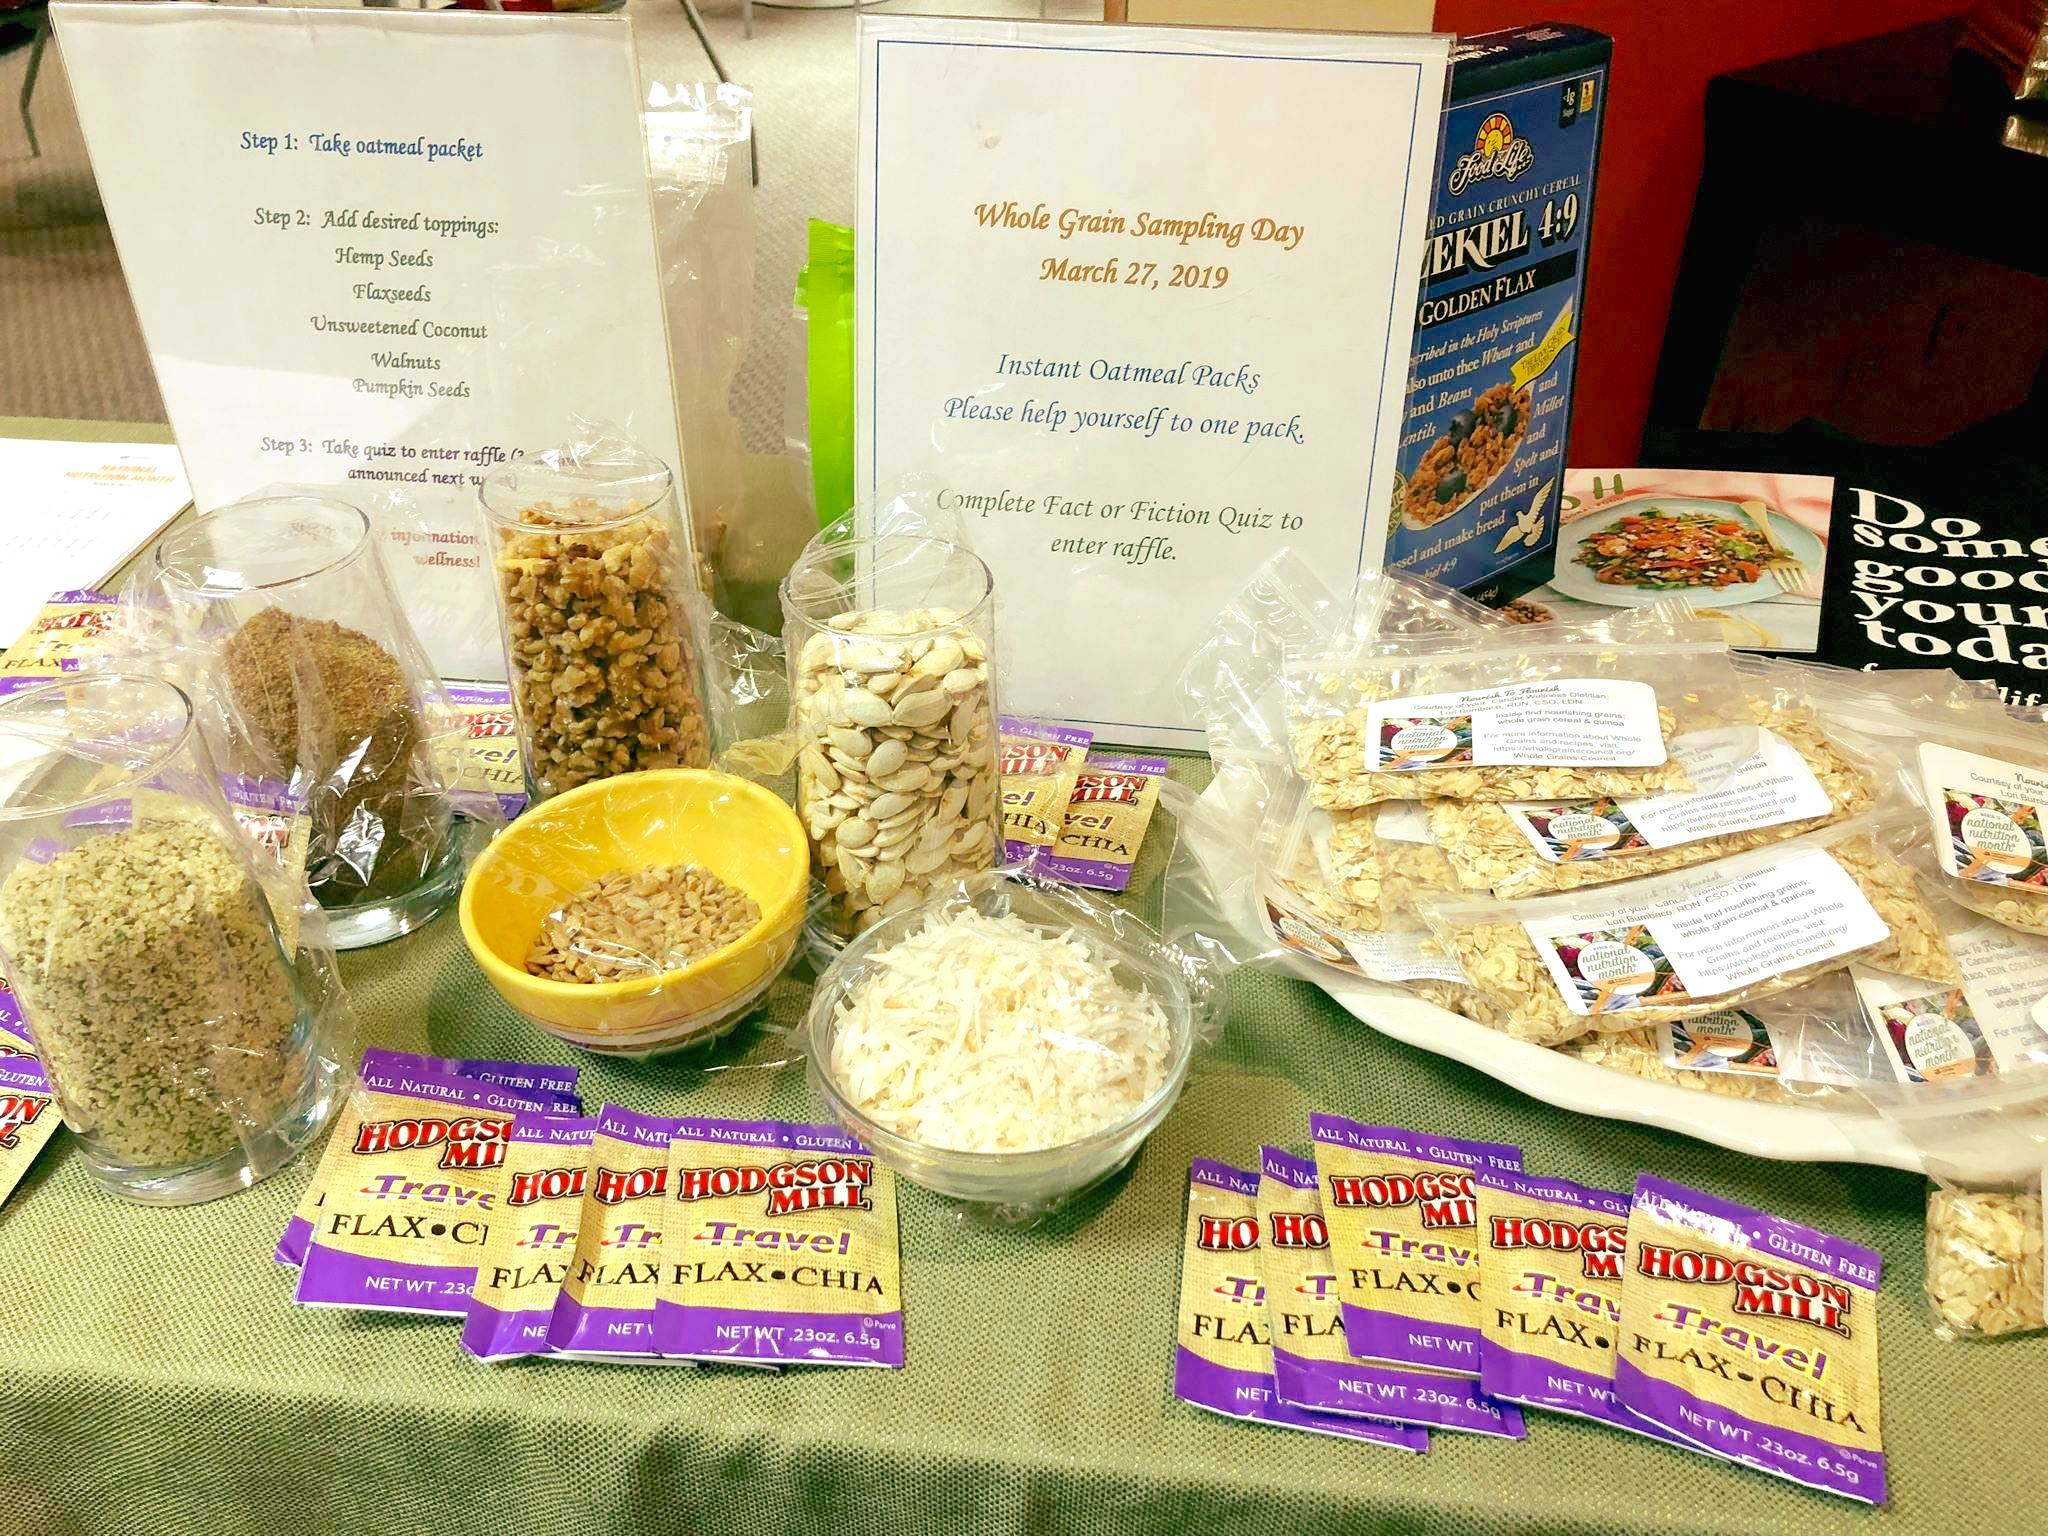 The Cancer Wellness Center's sample table